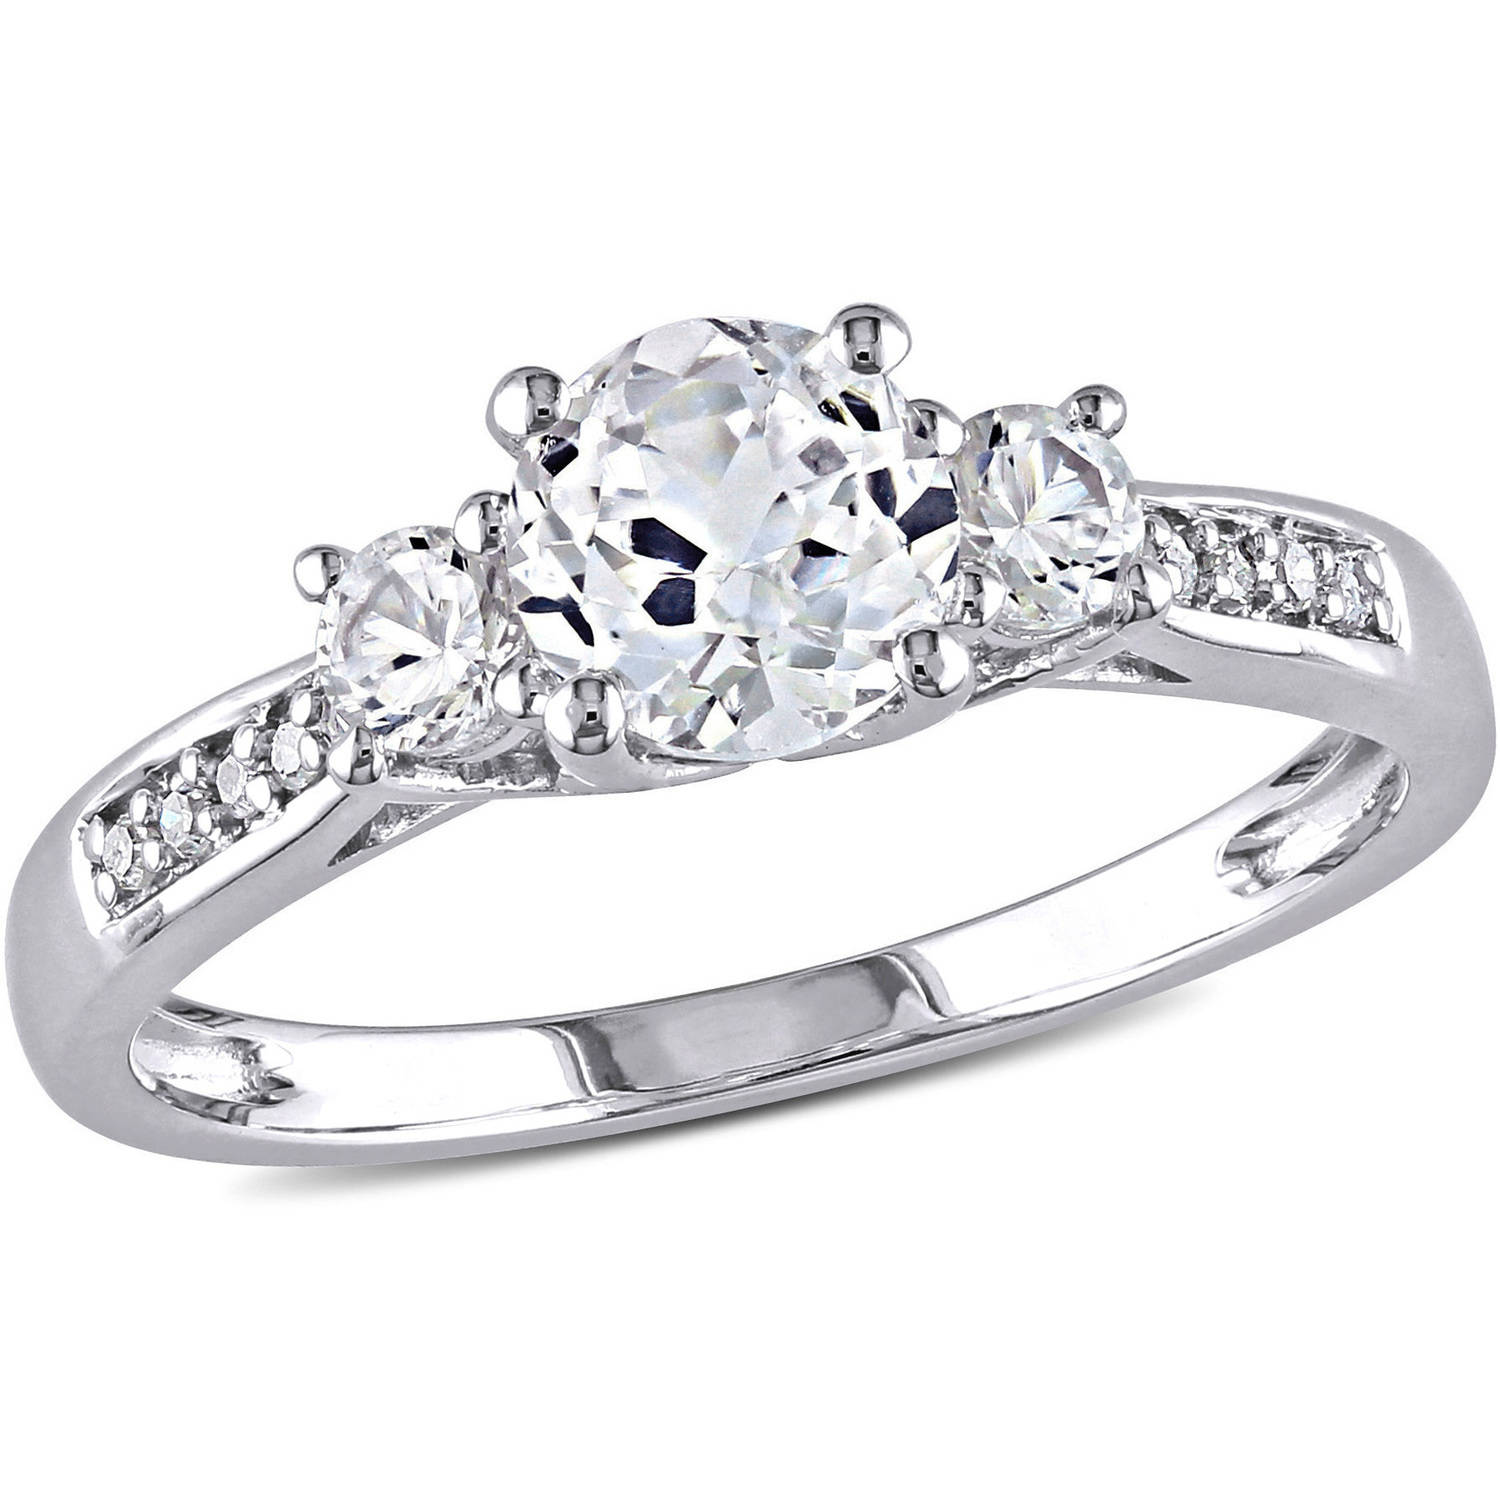 ring engagement with of for size and rings bands review under cheap accents walmart wedding jewellery inexpensive matching diamond gold her white trio jared sets full affordable him sapphire